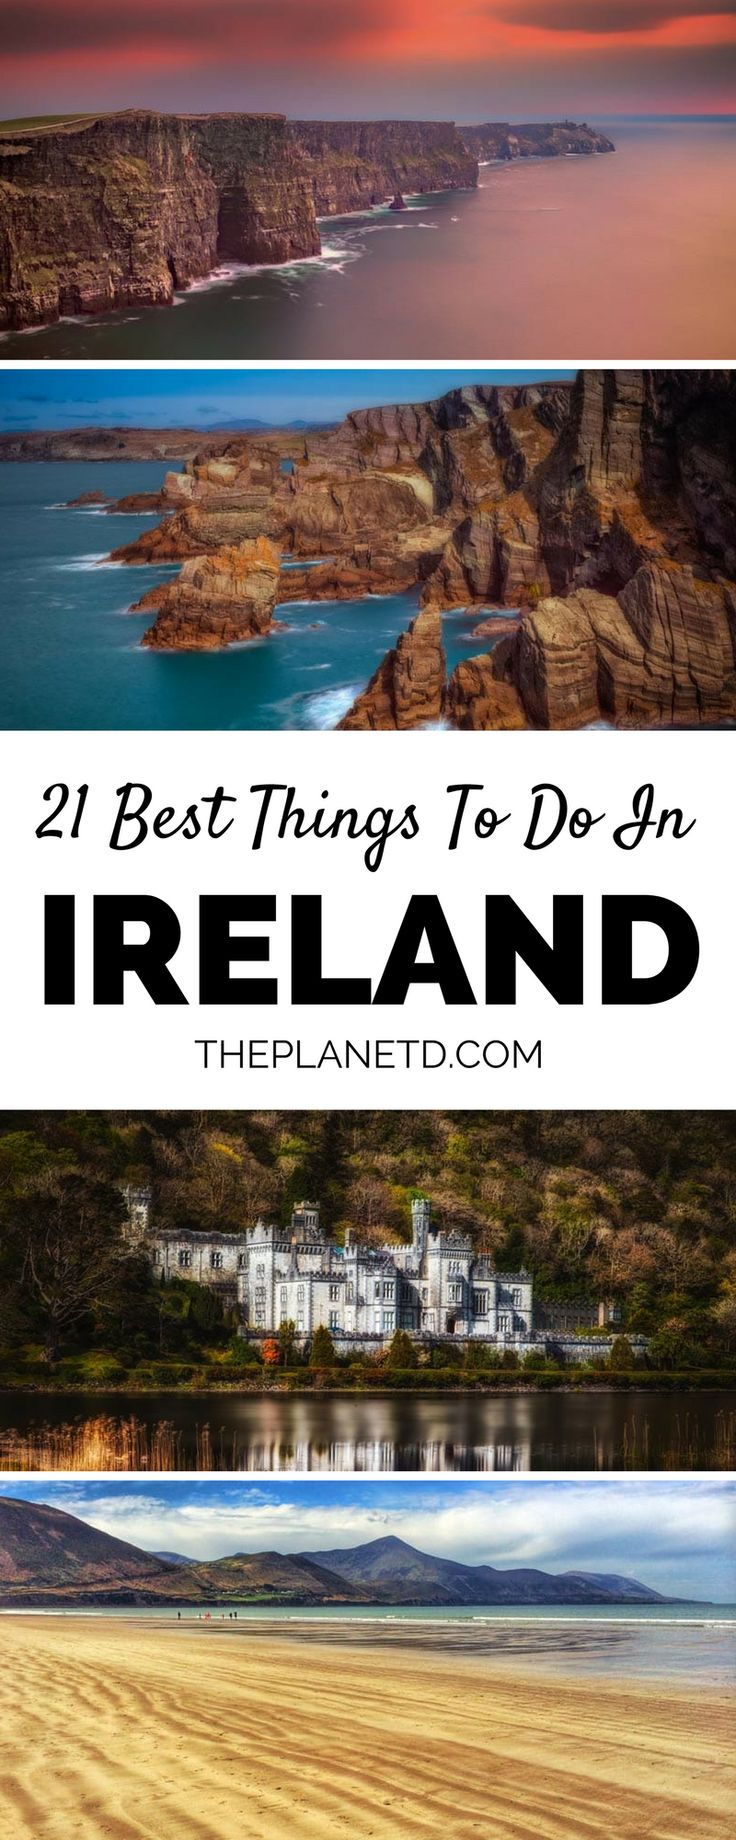 A complete guide with 21 of the best things to do in Ireland. Take a day trip to Galway and venture off to the cliffs of Moher or visit a castle along the coast. Escape the Dublin and Cork city centers with day trips around the country. Experience the rolling hills and seemingly endless green countryside of Ireland. Travel in Ireland. | Blog by the Planet D #Ireland